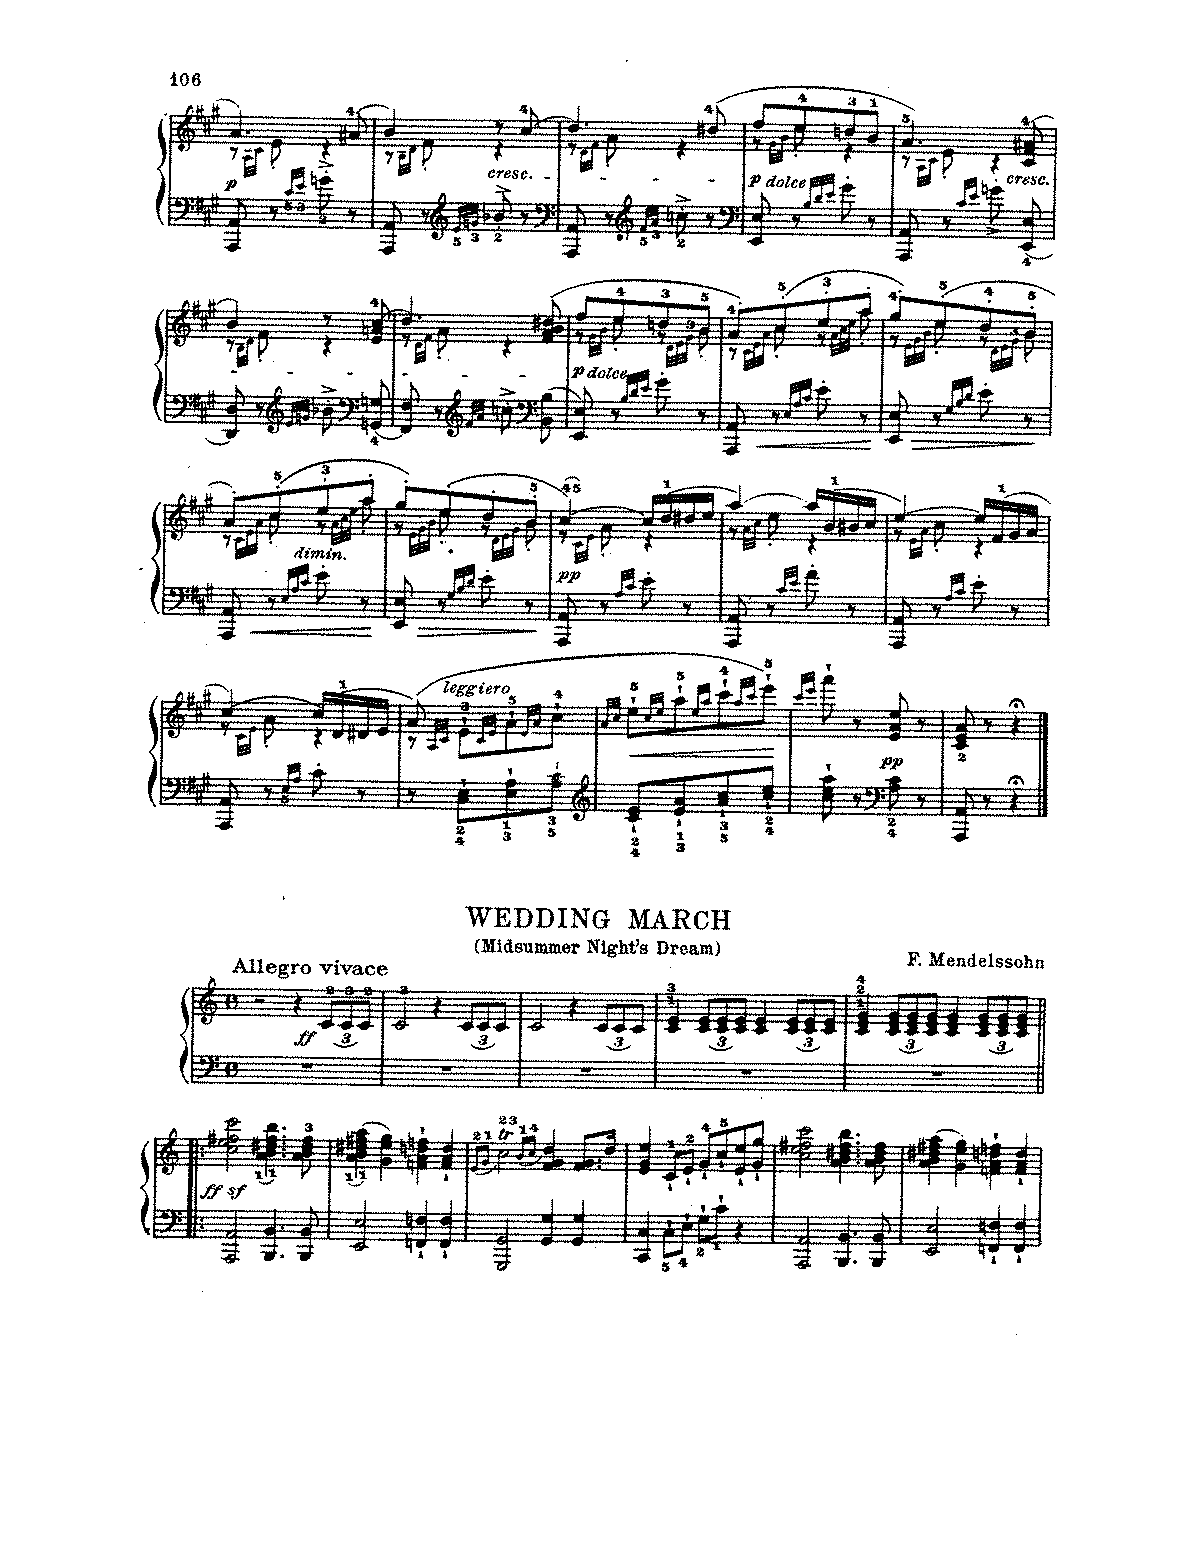 Wedding mendelssohn.pdf